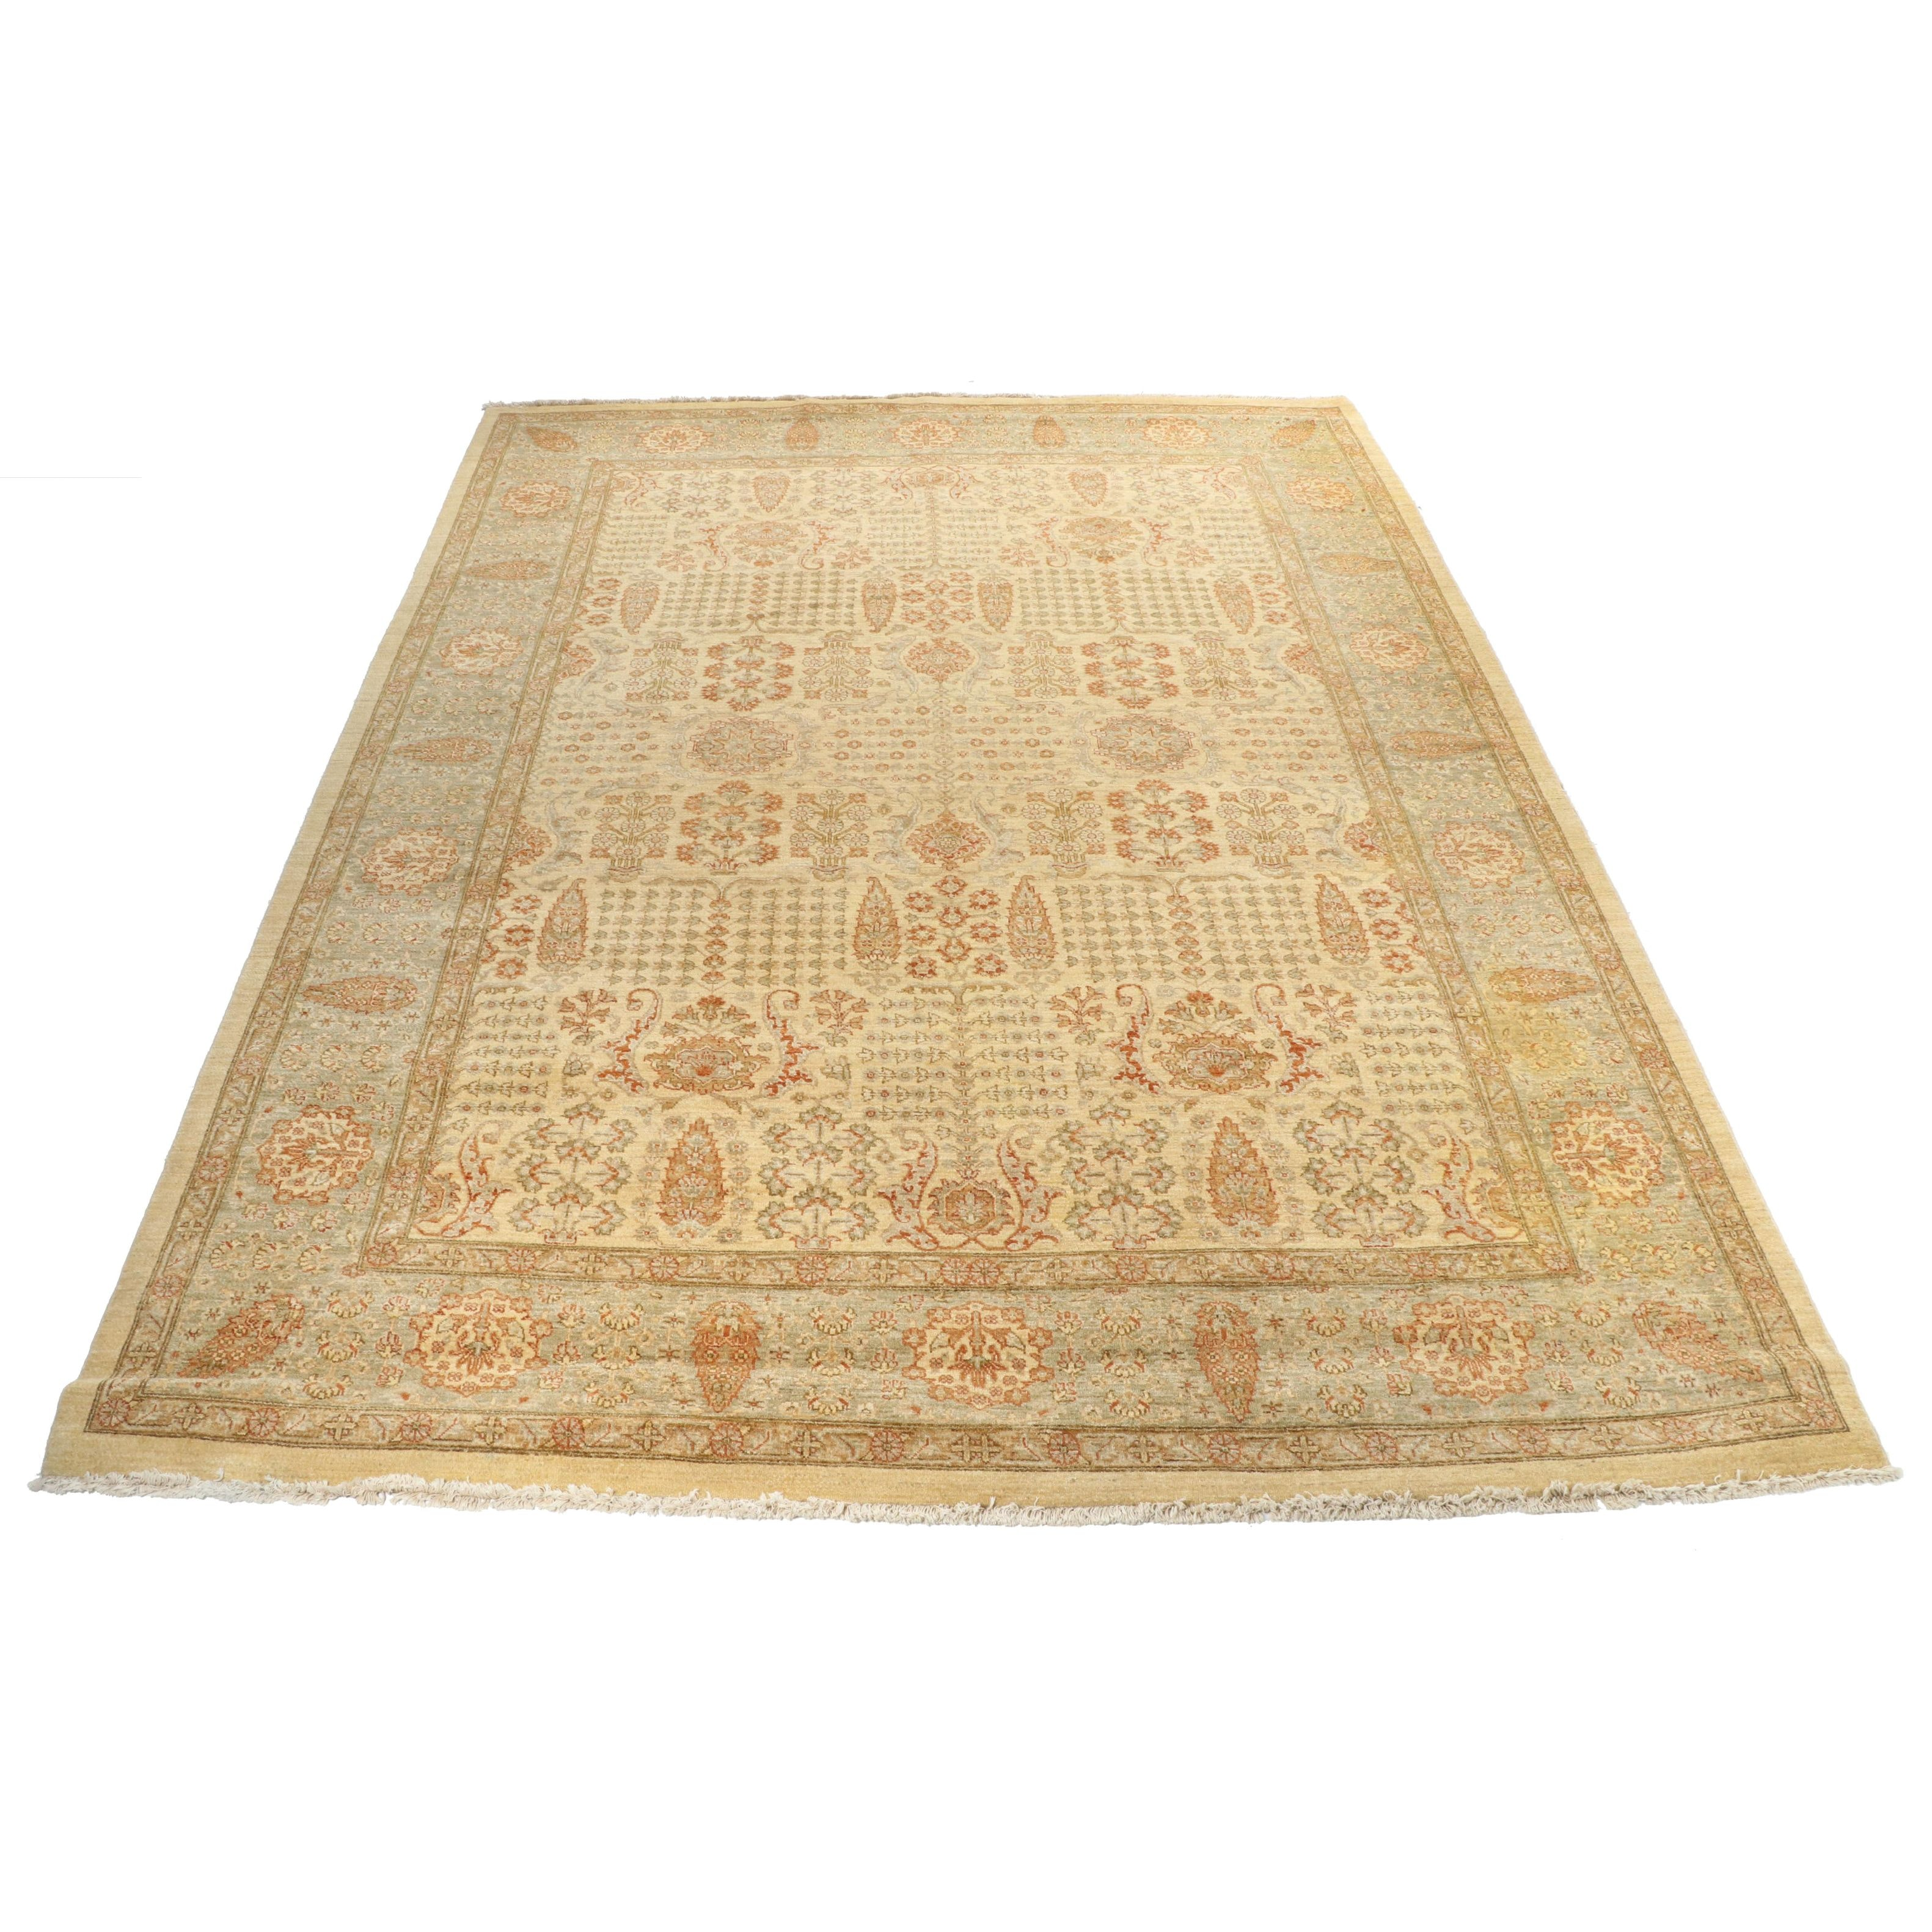 """Hand-Knotted Pakistani """"Mughal"""" Wool Room Sized Rug"""